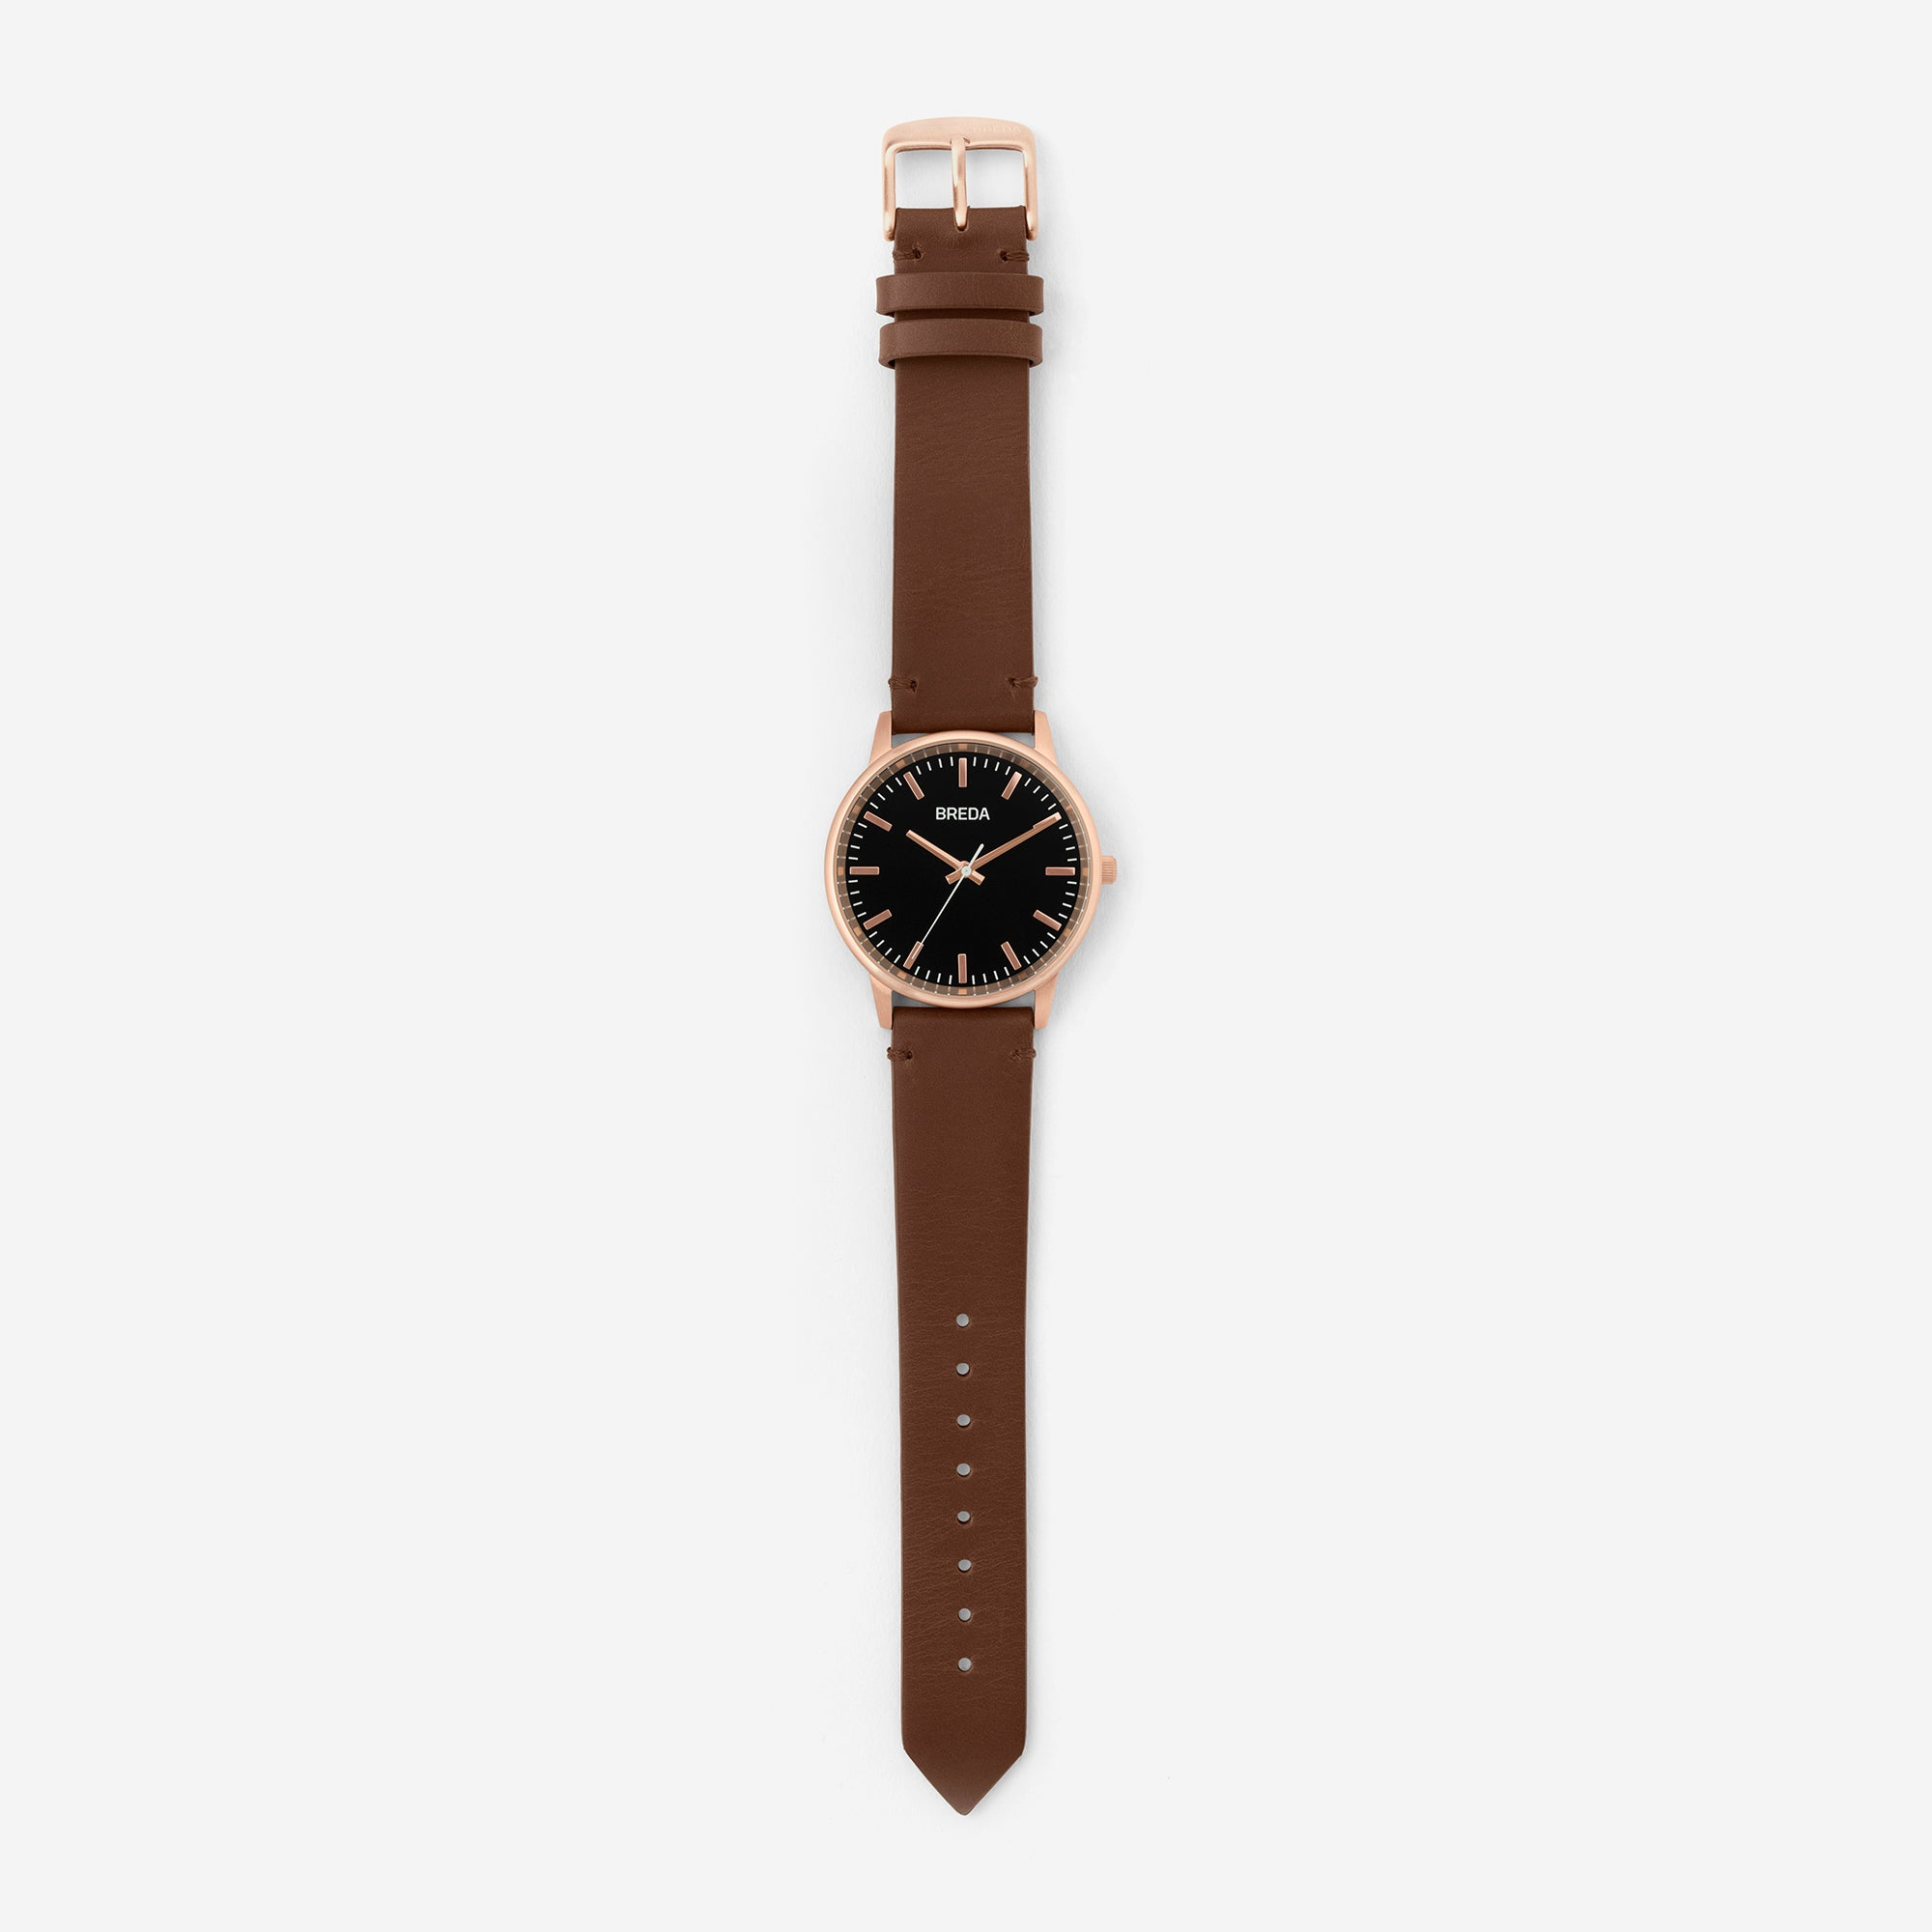 //cdn.shopify.com/s/files/1/0879/6650/products/breda-zapf-1697n-rose-gold-brown-leather-watch-long_efa4ea19-b6a8-42b1-865e-fcc0c694567c_1024x1024.jpg?v=1543248251